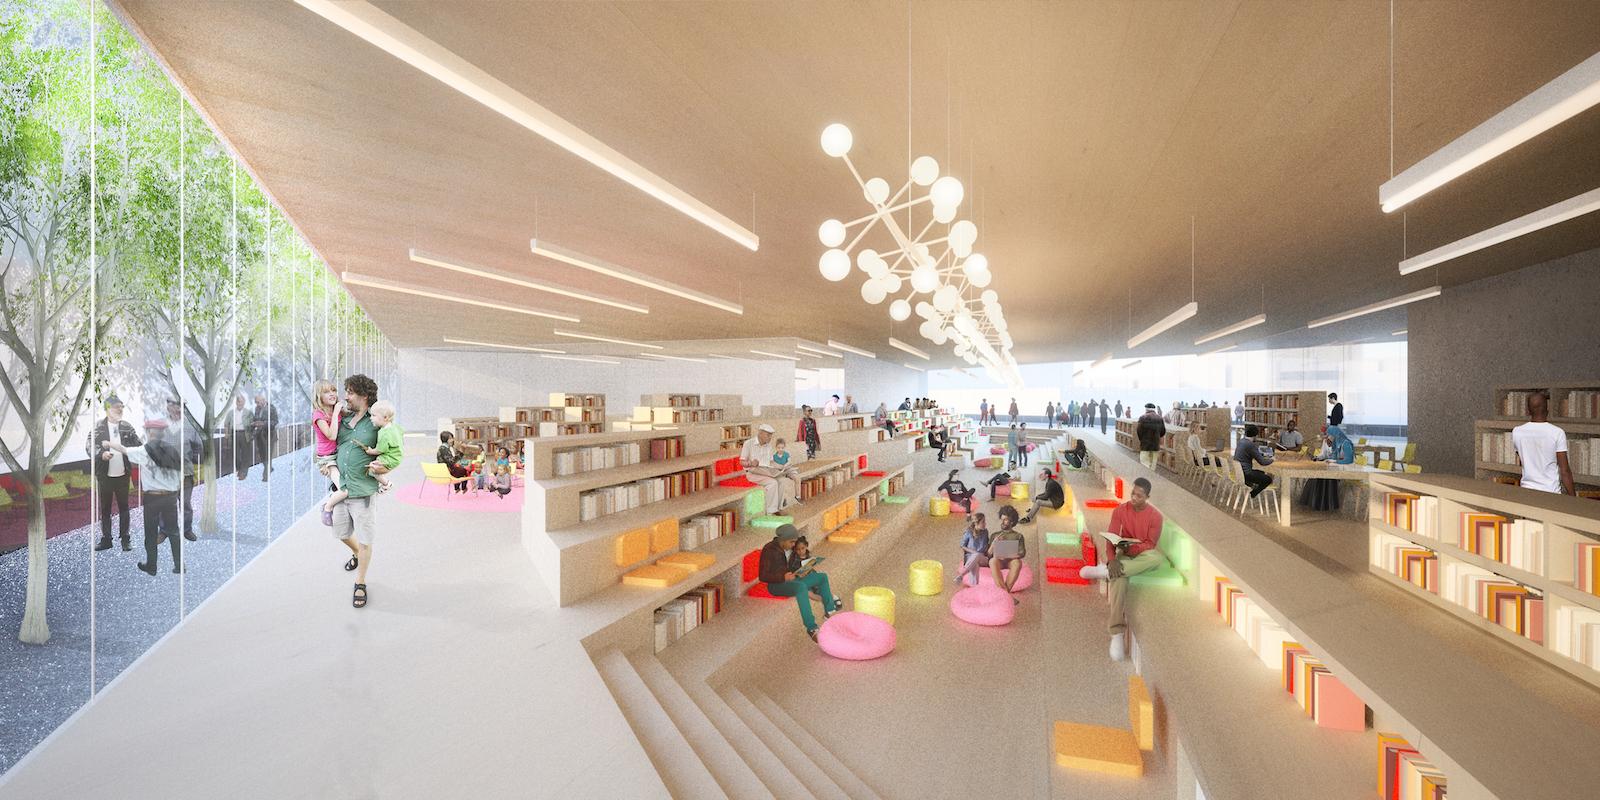 Library reading room with children